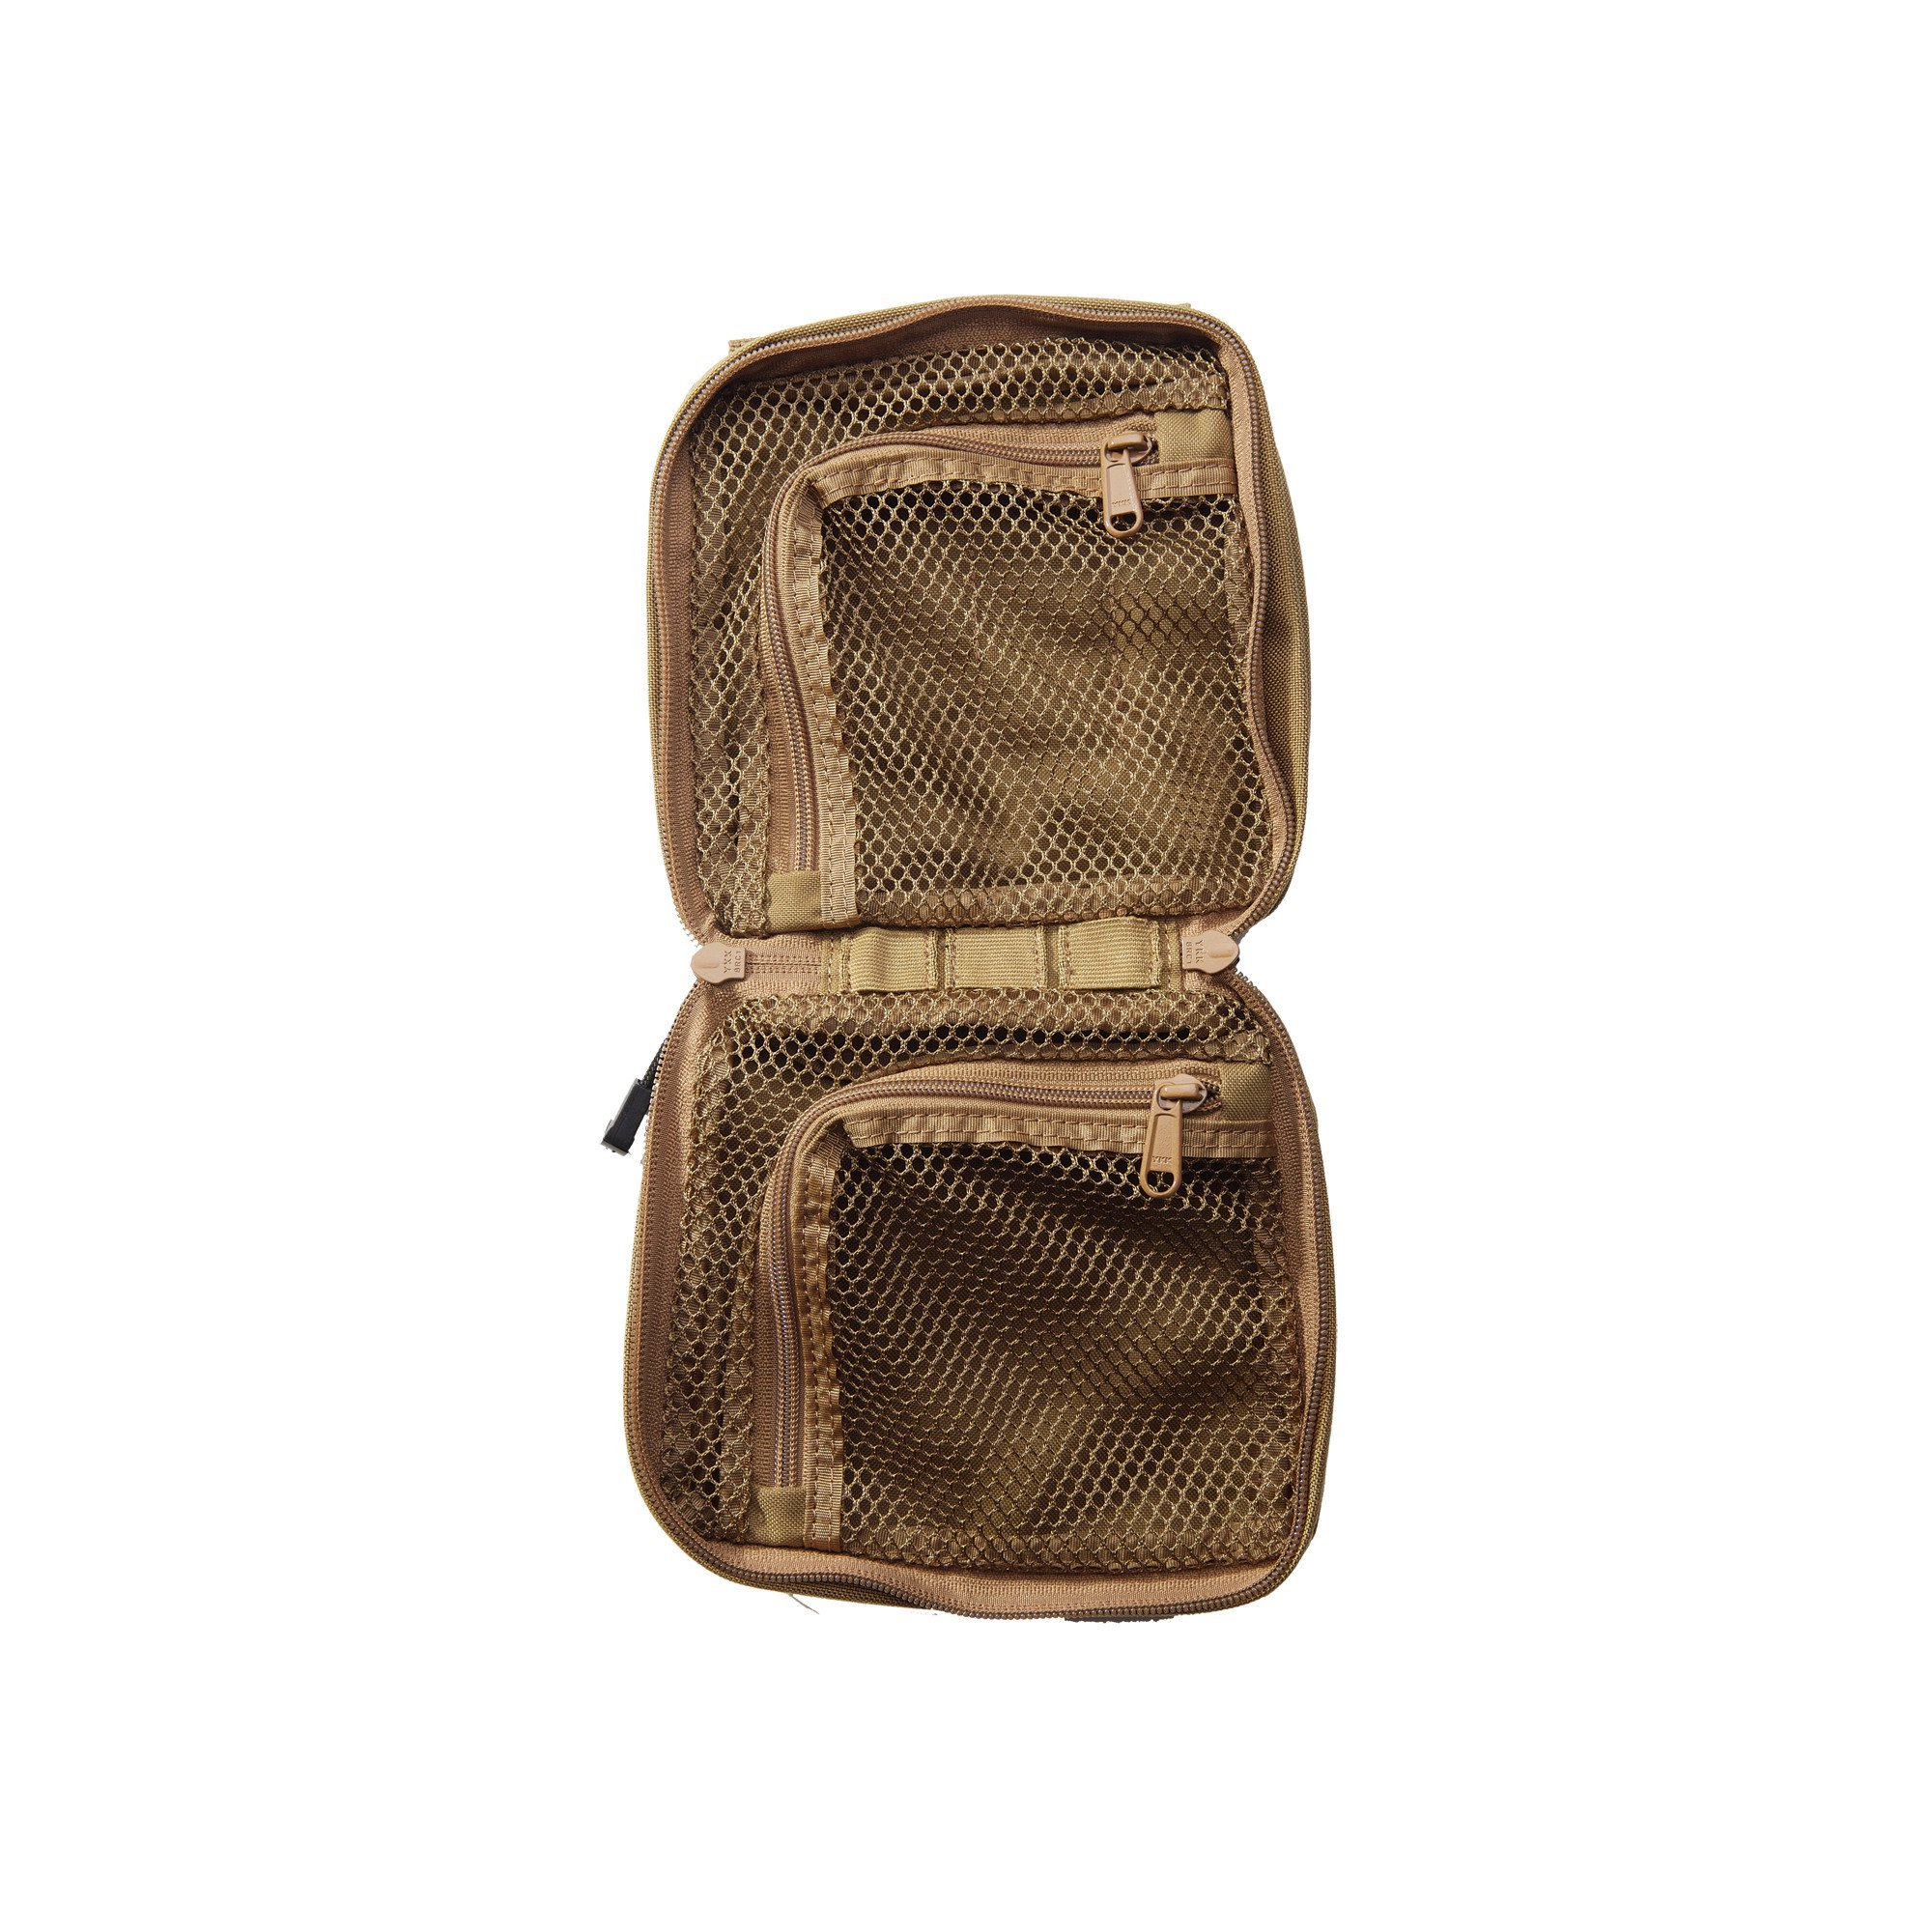 6 X 6 MED POUCH – Black